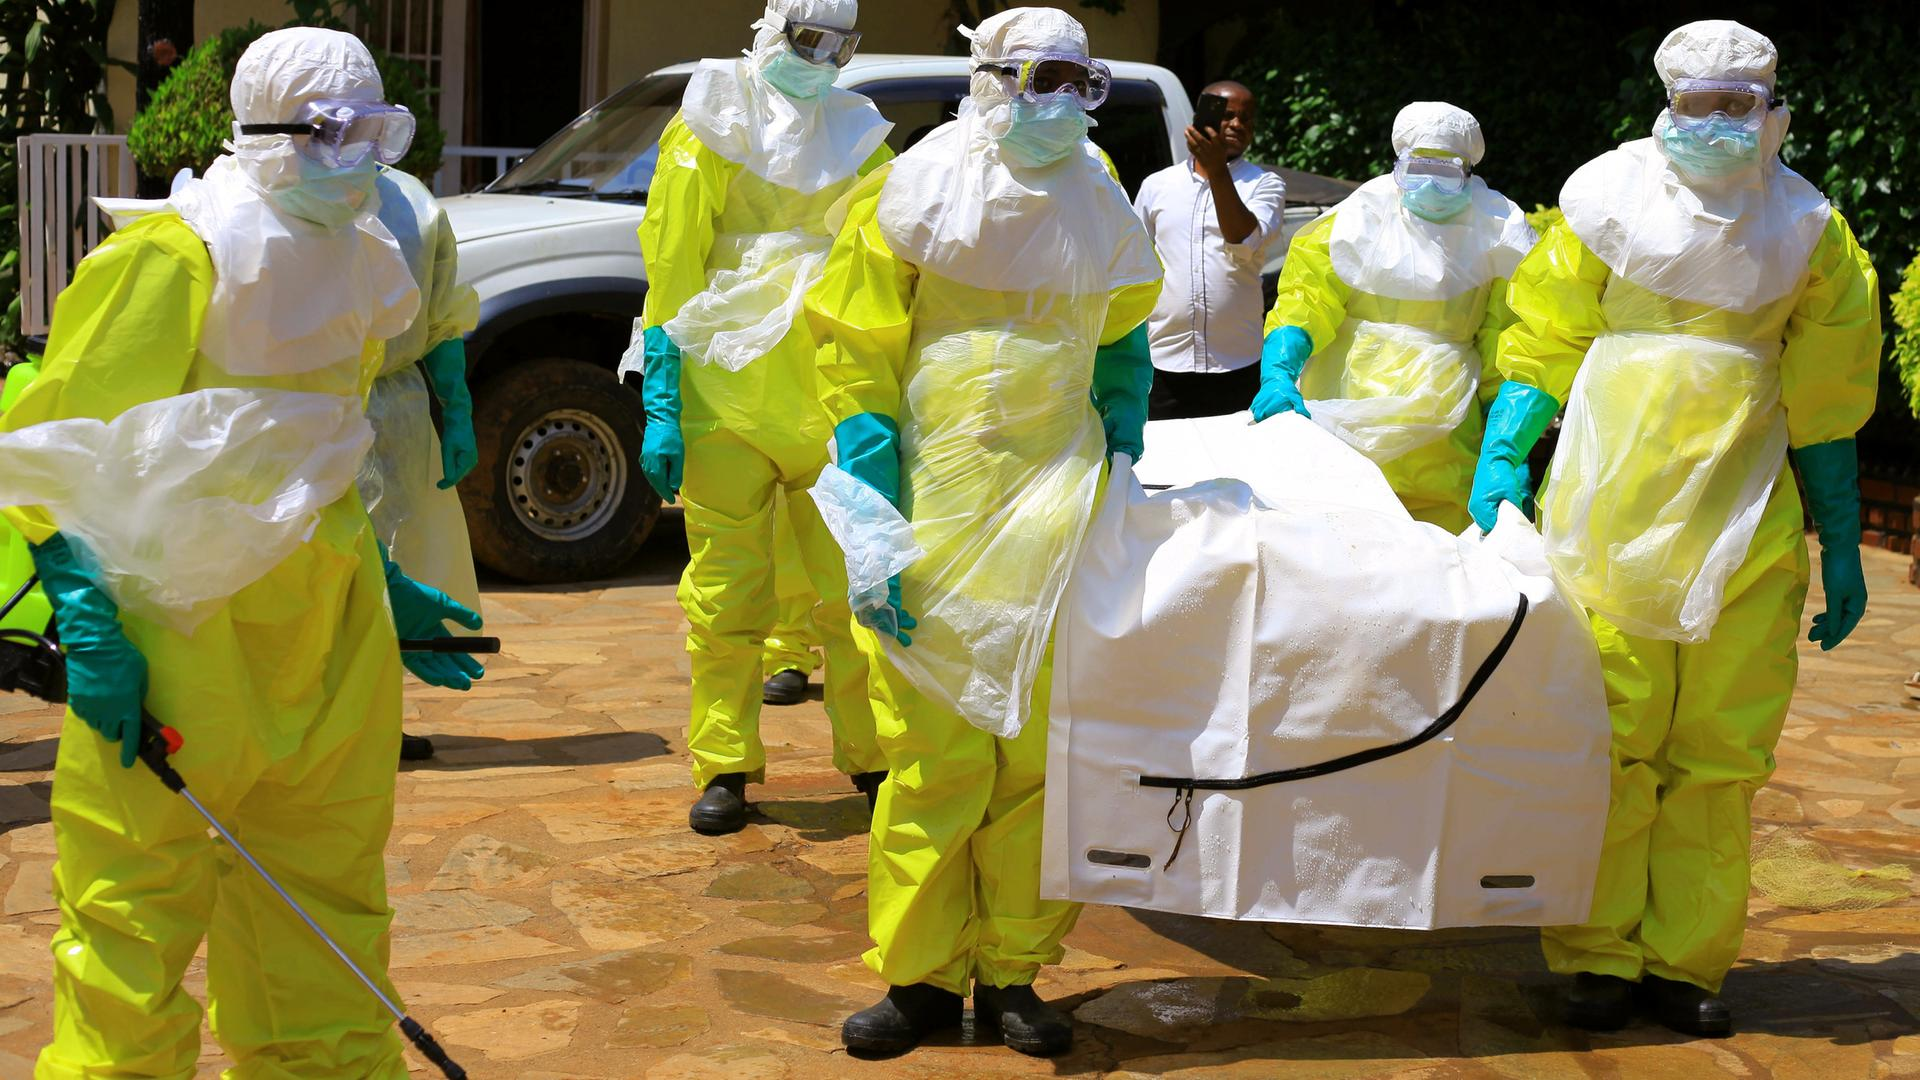 Ebola epidemic in the Democratic Republic of the Congo (DRC) has claimed more than a thousand lives (PHOTO/File)